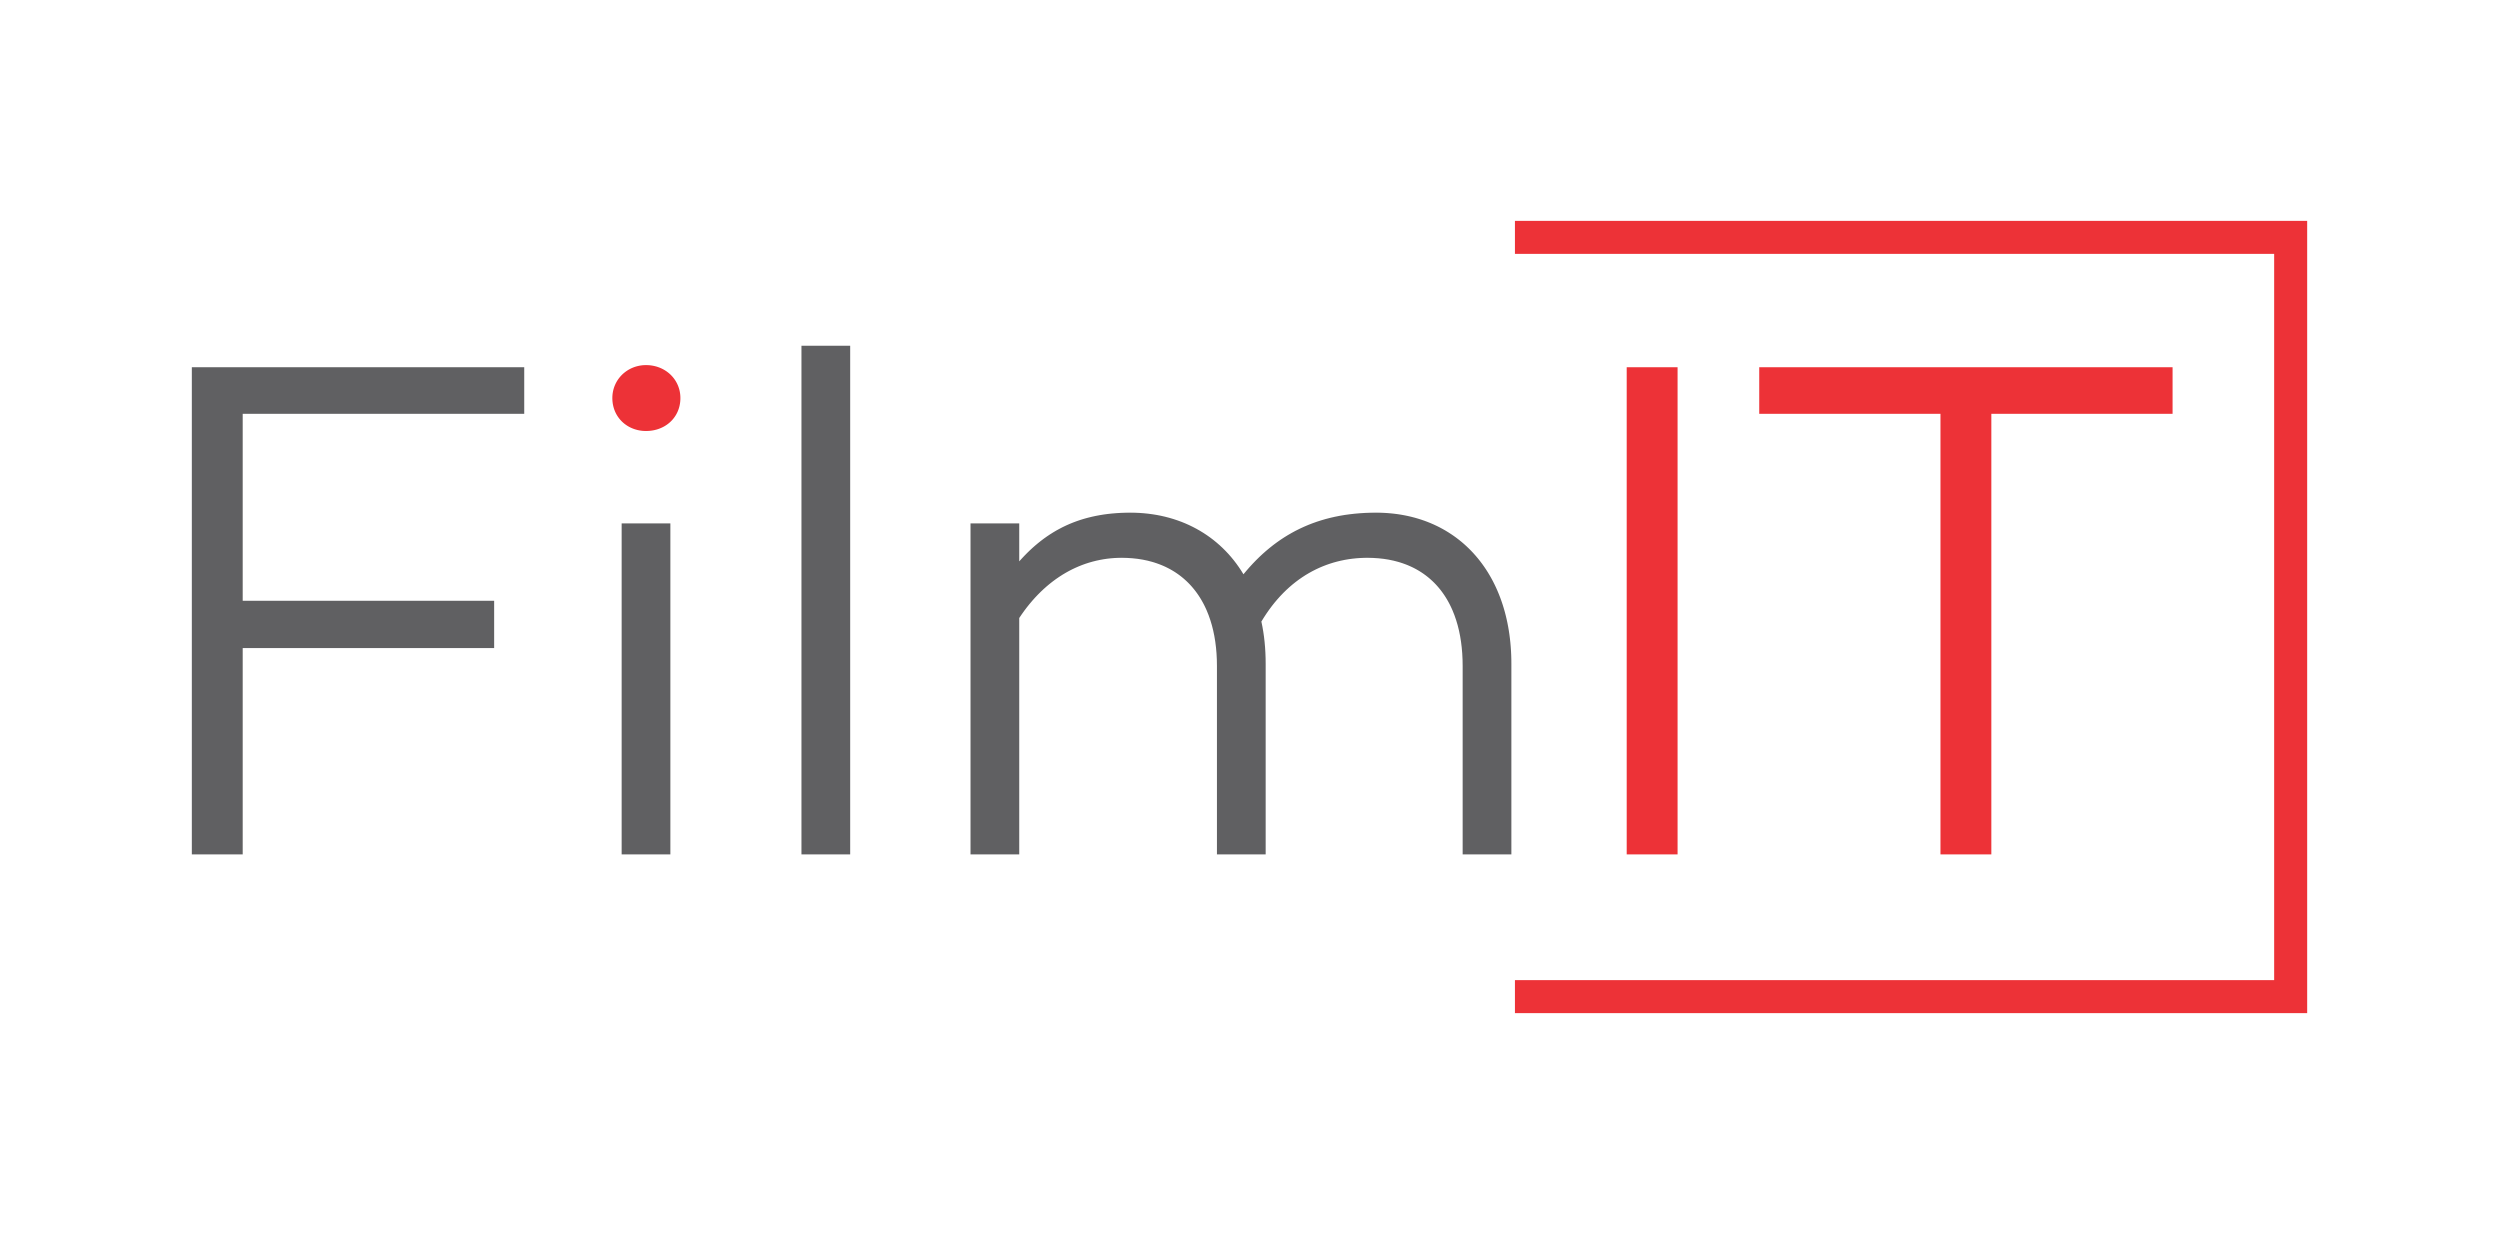 Our startup, FilmIT, needs a nice logo to get going